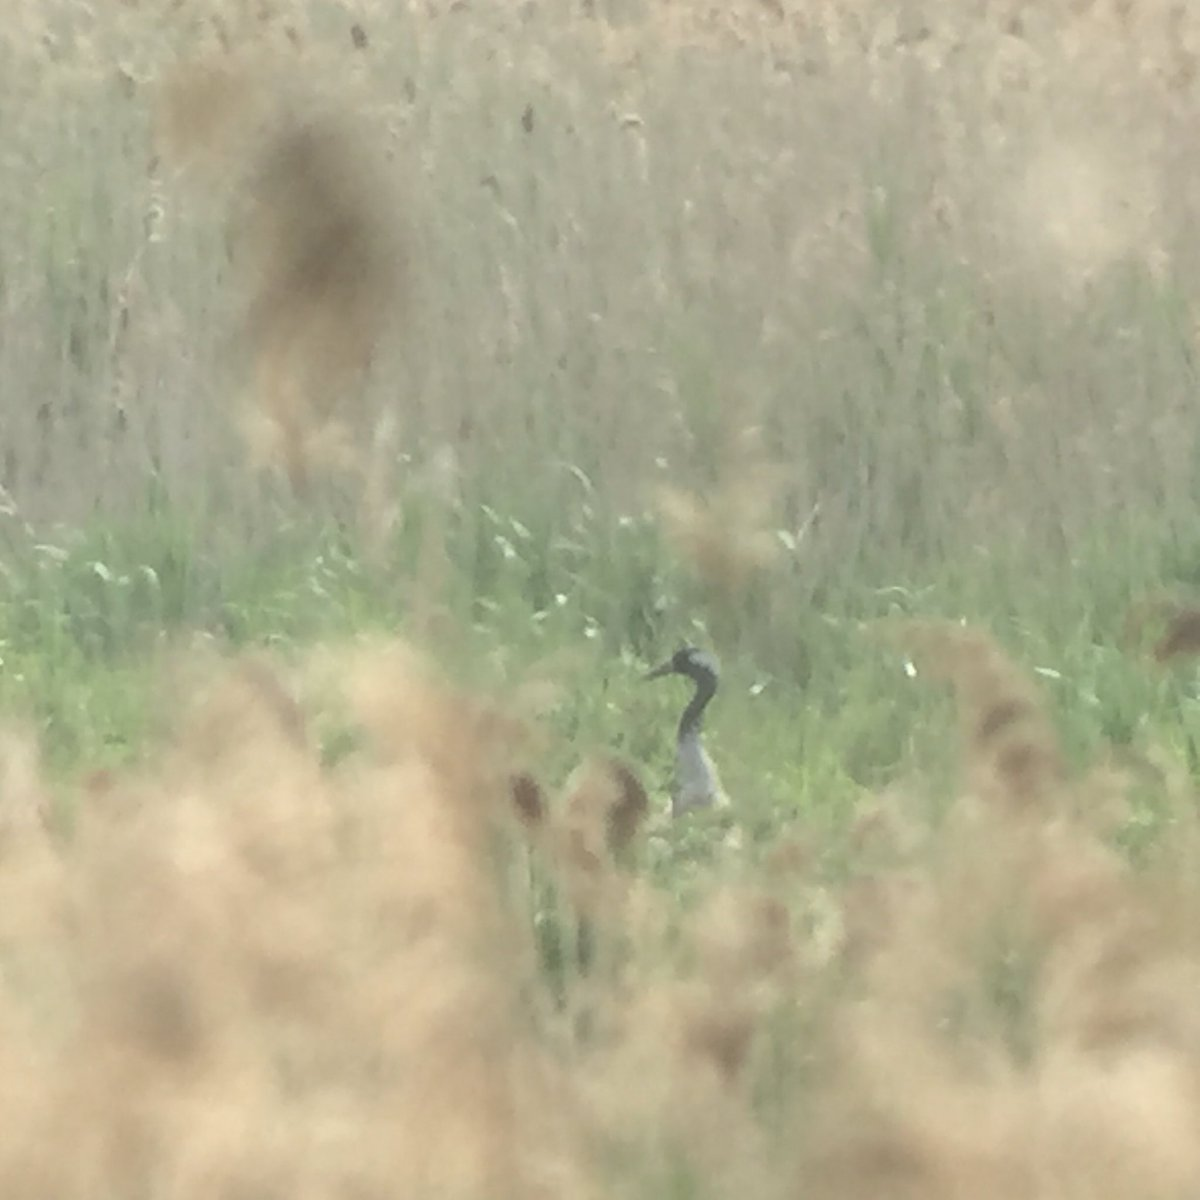 Crane at Lakenheath with @_BTO. #yeartick @_ieuan @Viola_RS https://t.co/XNiPsSAoJX